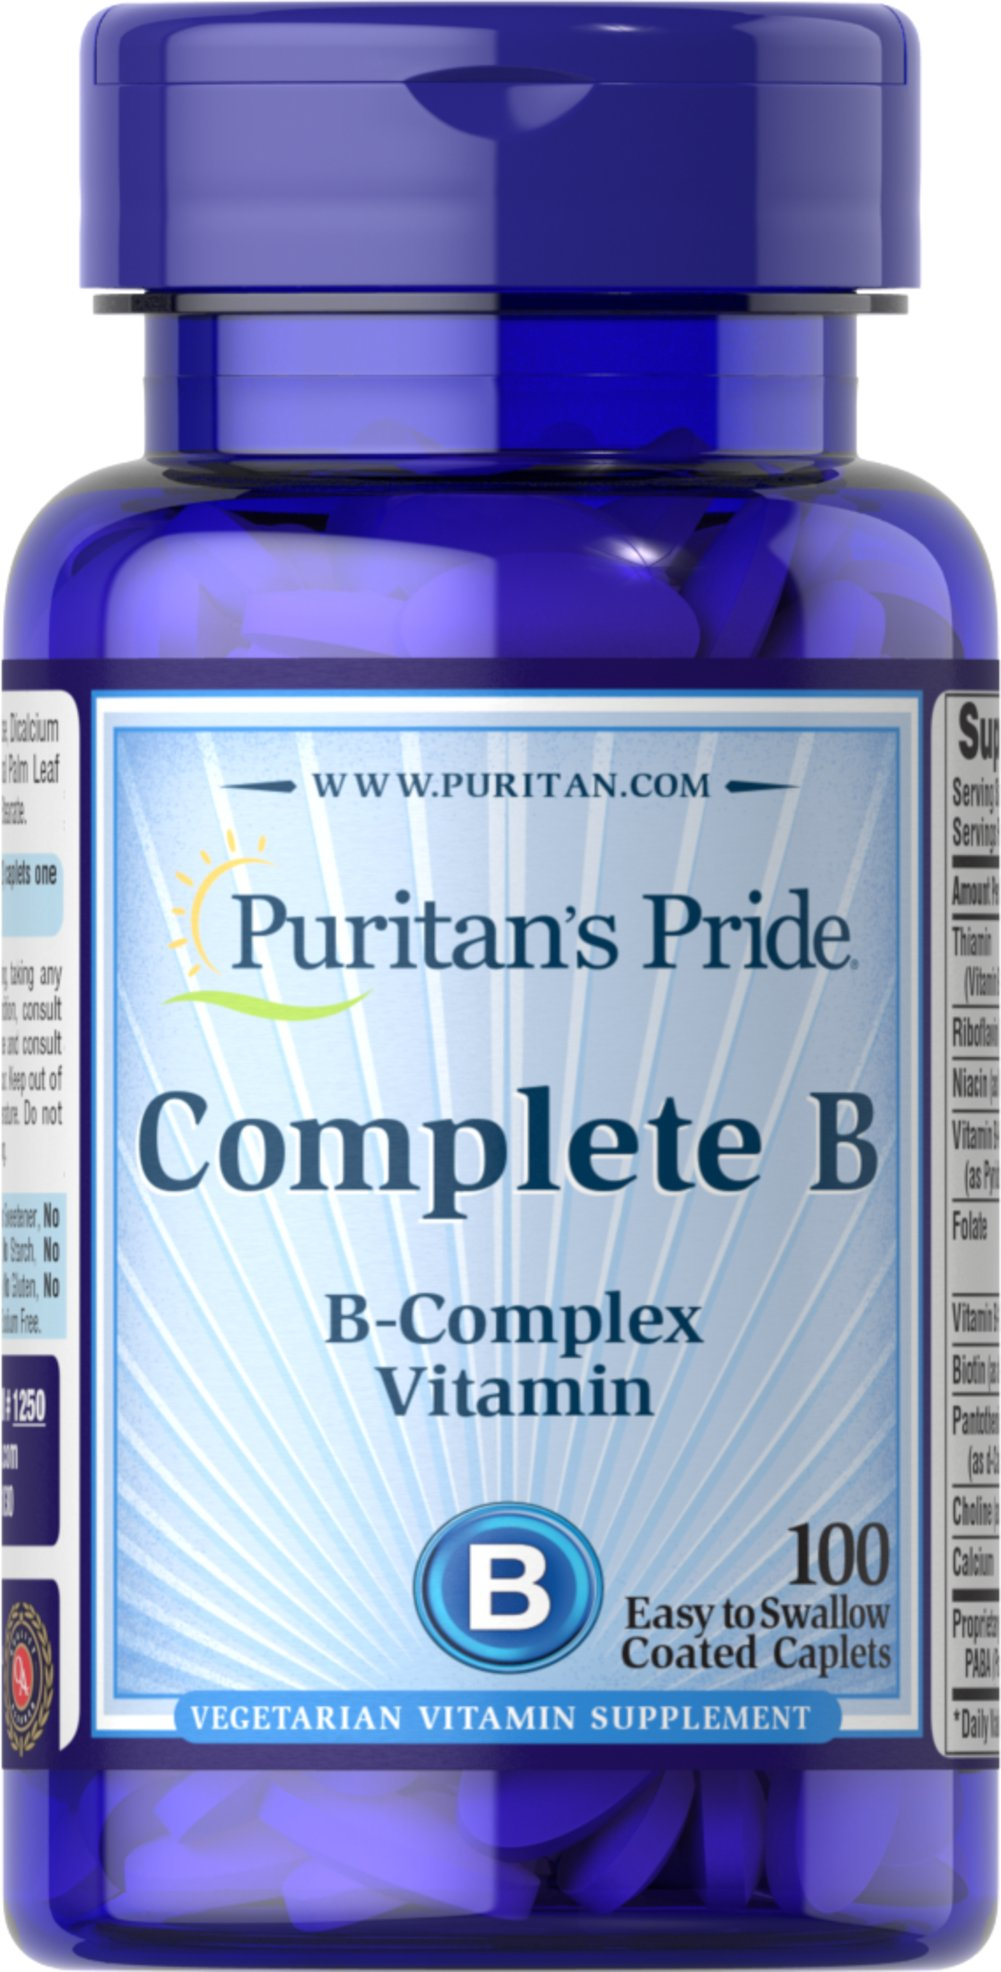 Complete B (Vitamin B Complex) <p>Complete Vitamin B Complex provides seven important B vitamins in just two caplets without sugar, starch, artificial colors or flavors. You get the entire B family in this sodium-free tablet the best B vitamin nutrition you can buy! Complete B can give you the peace of mind you deserve.</p> 100 Caplets  $14.99